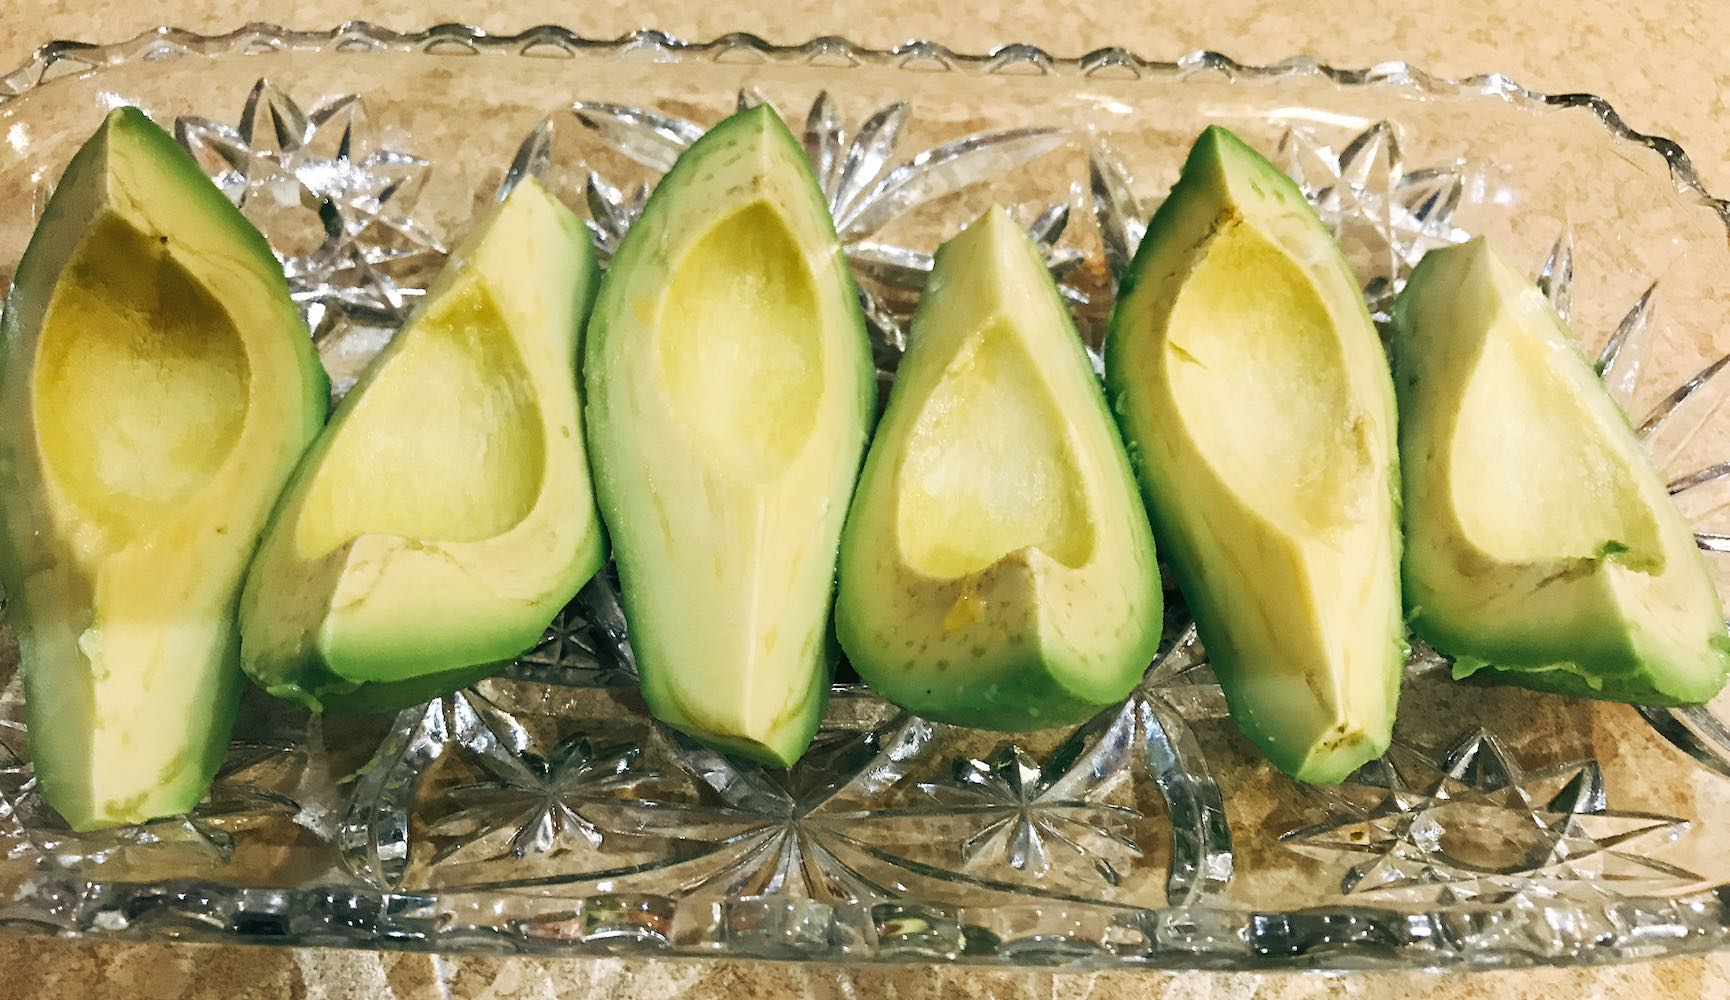 Sliced avocados from South Africa